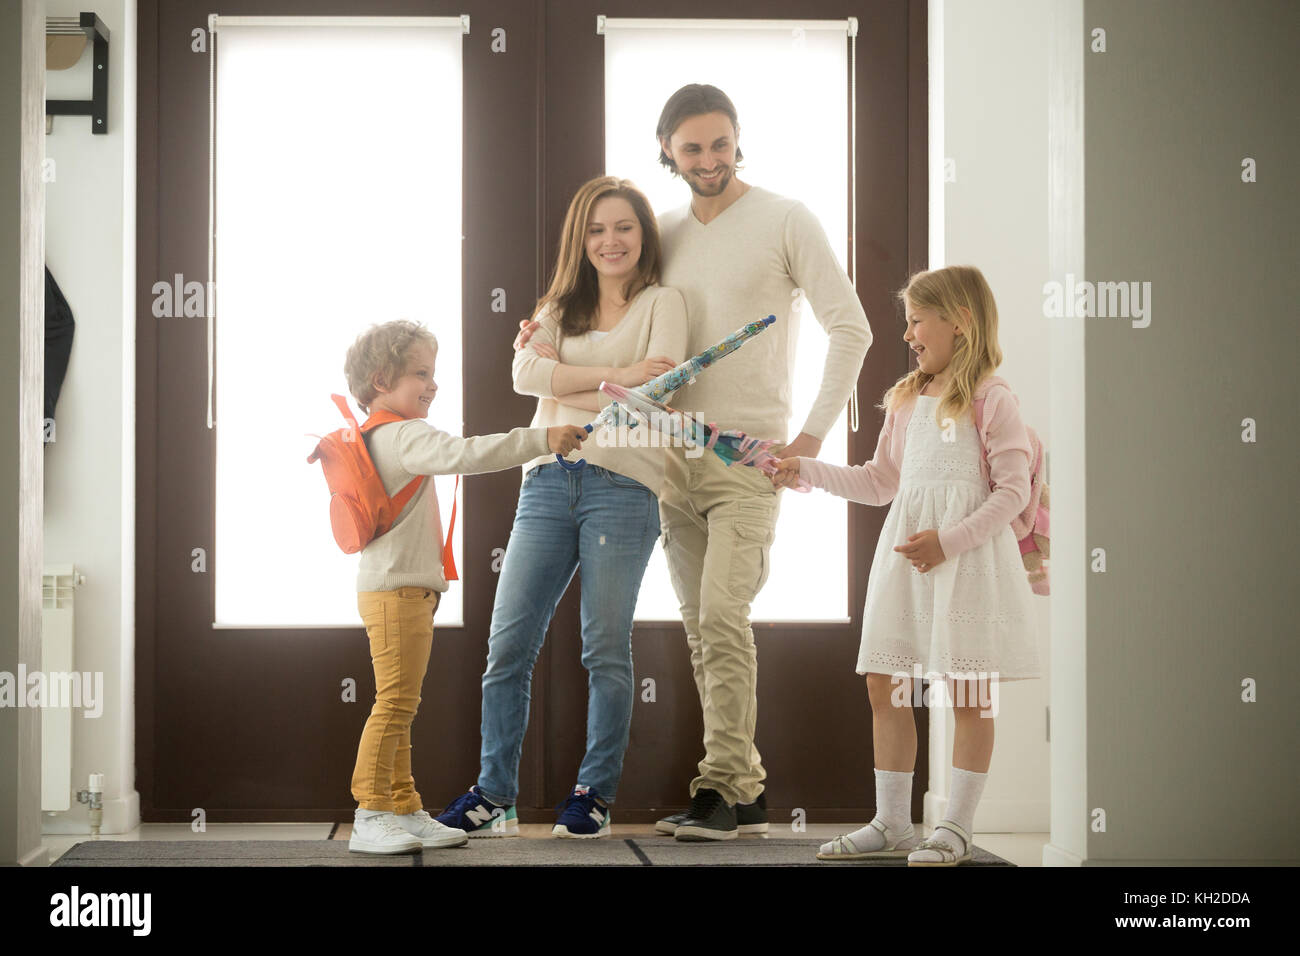 Sister and brother play umbrellas, kids boy and girl having fun standing at hallway, happy family of four spending - Stock Image